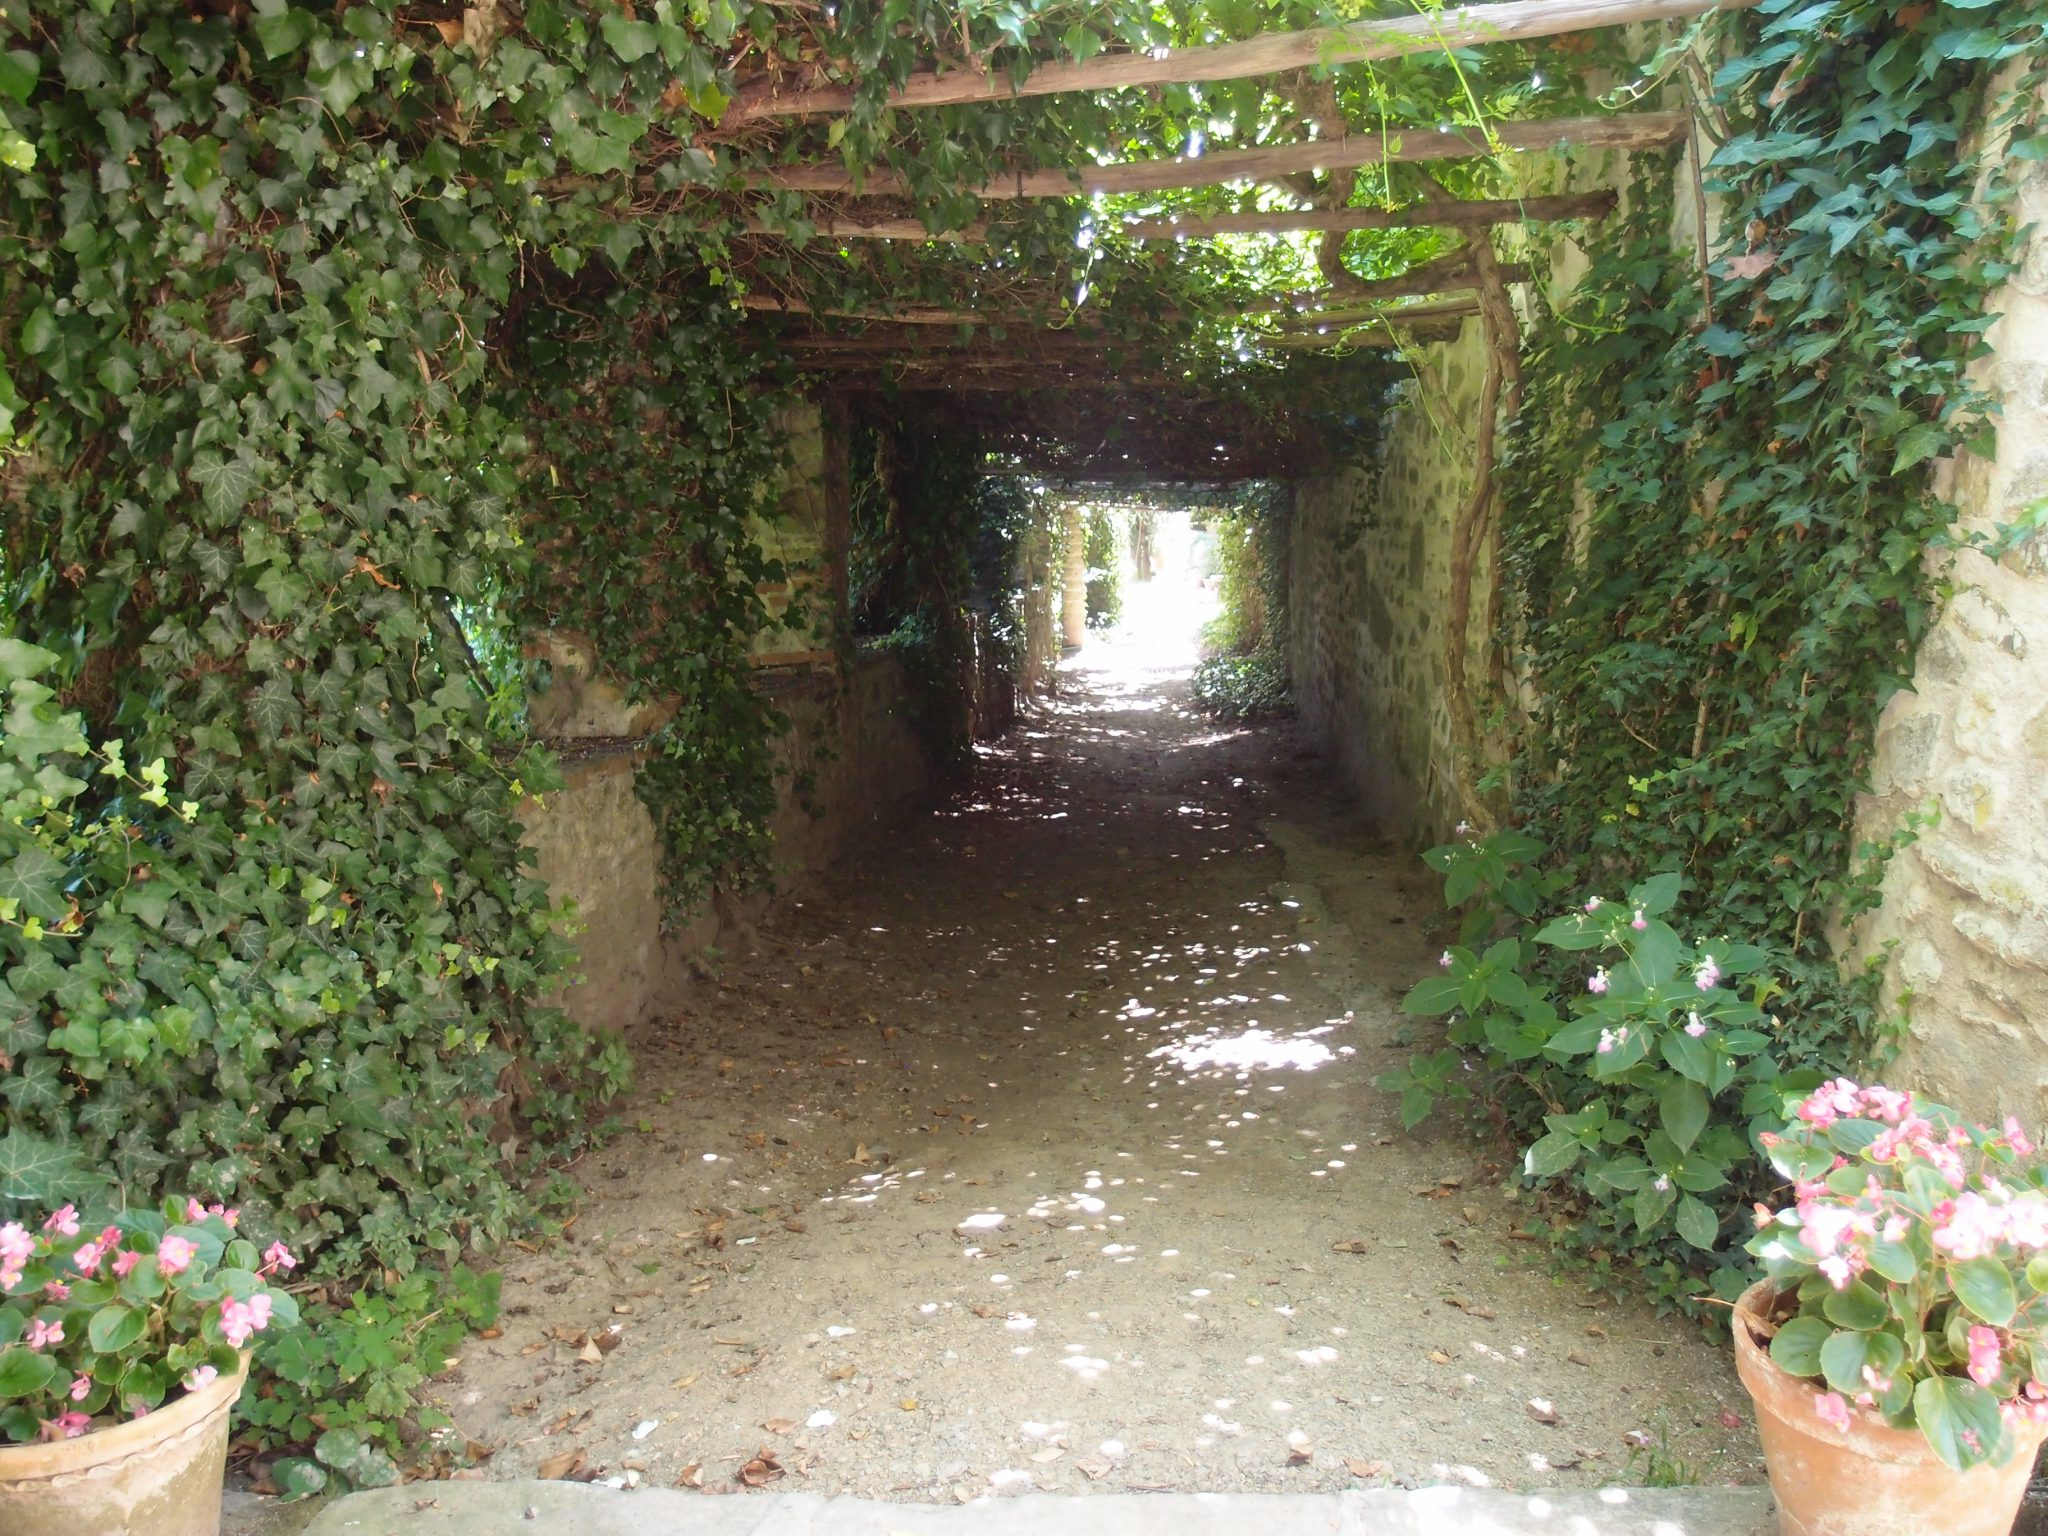 And this passage through yet another leafy tunnel makes us feel as if we've fallen down the Rabbit Hole, and into a Separate World.